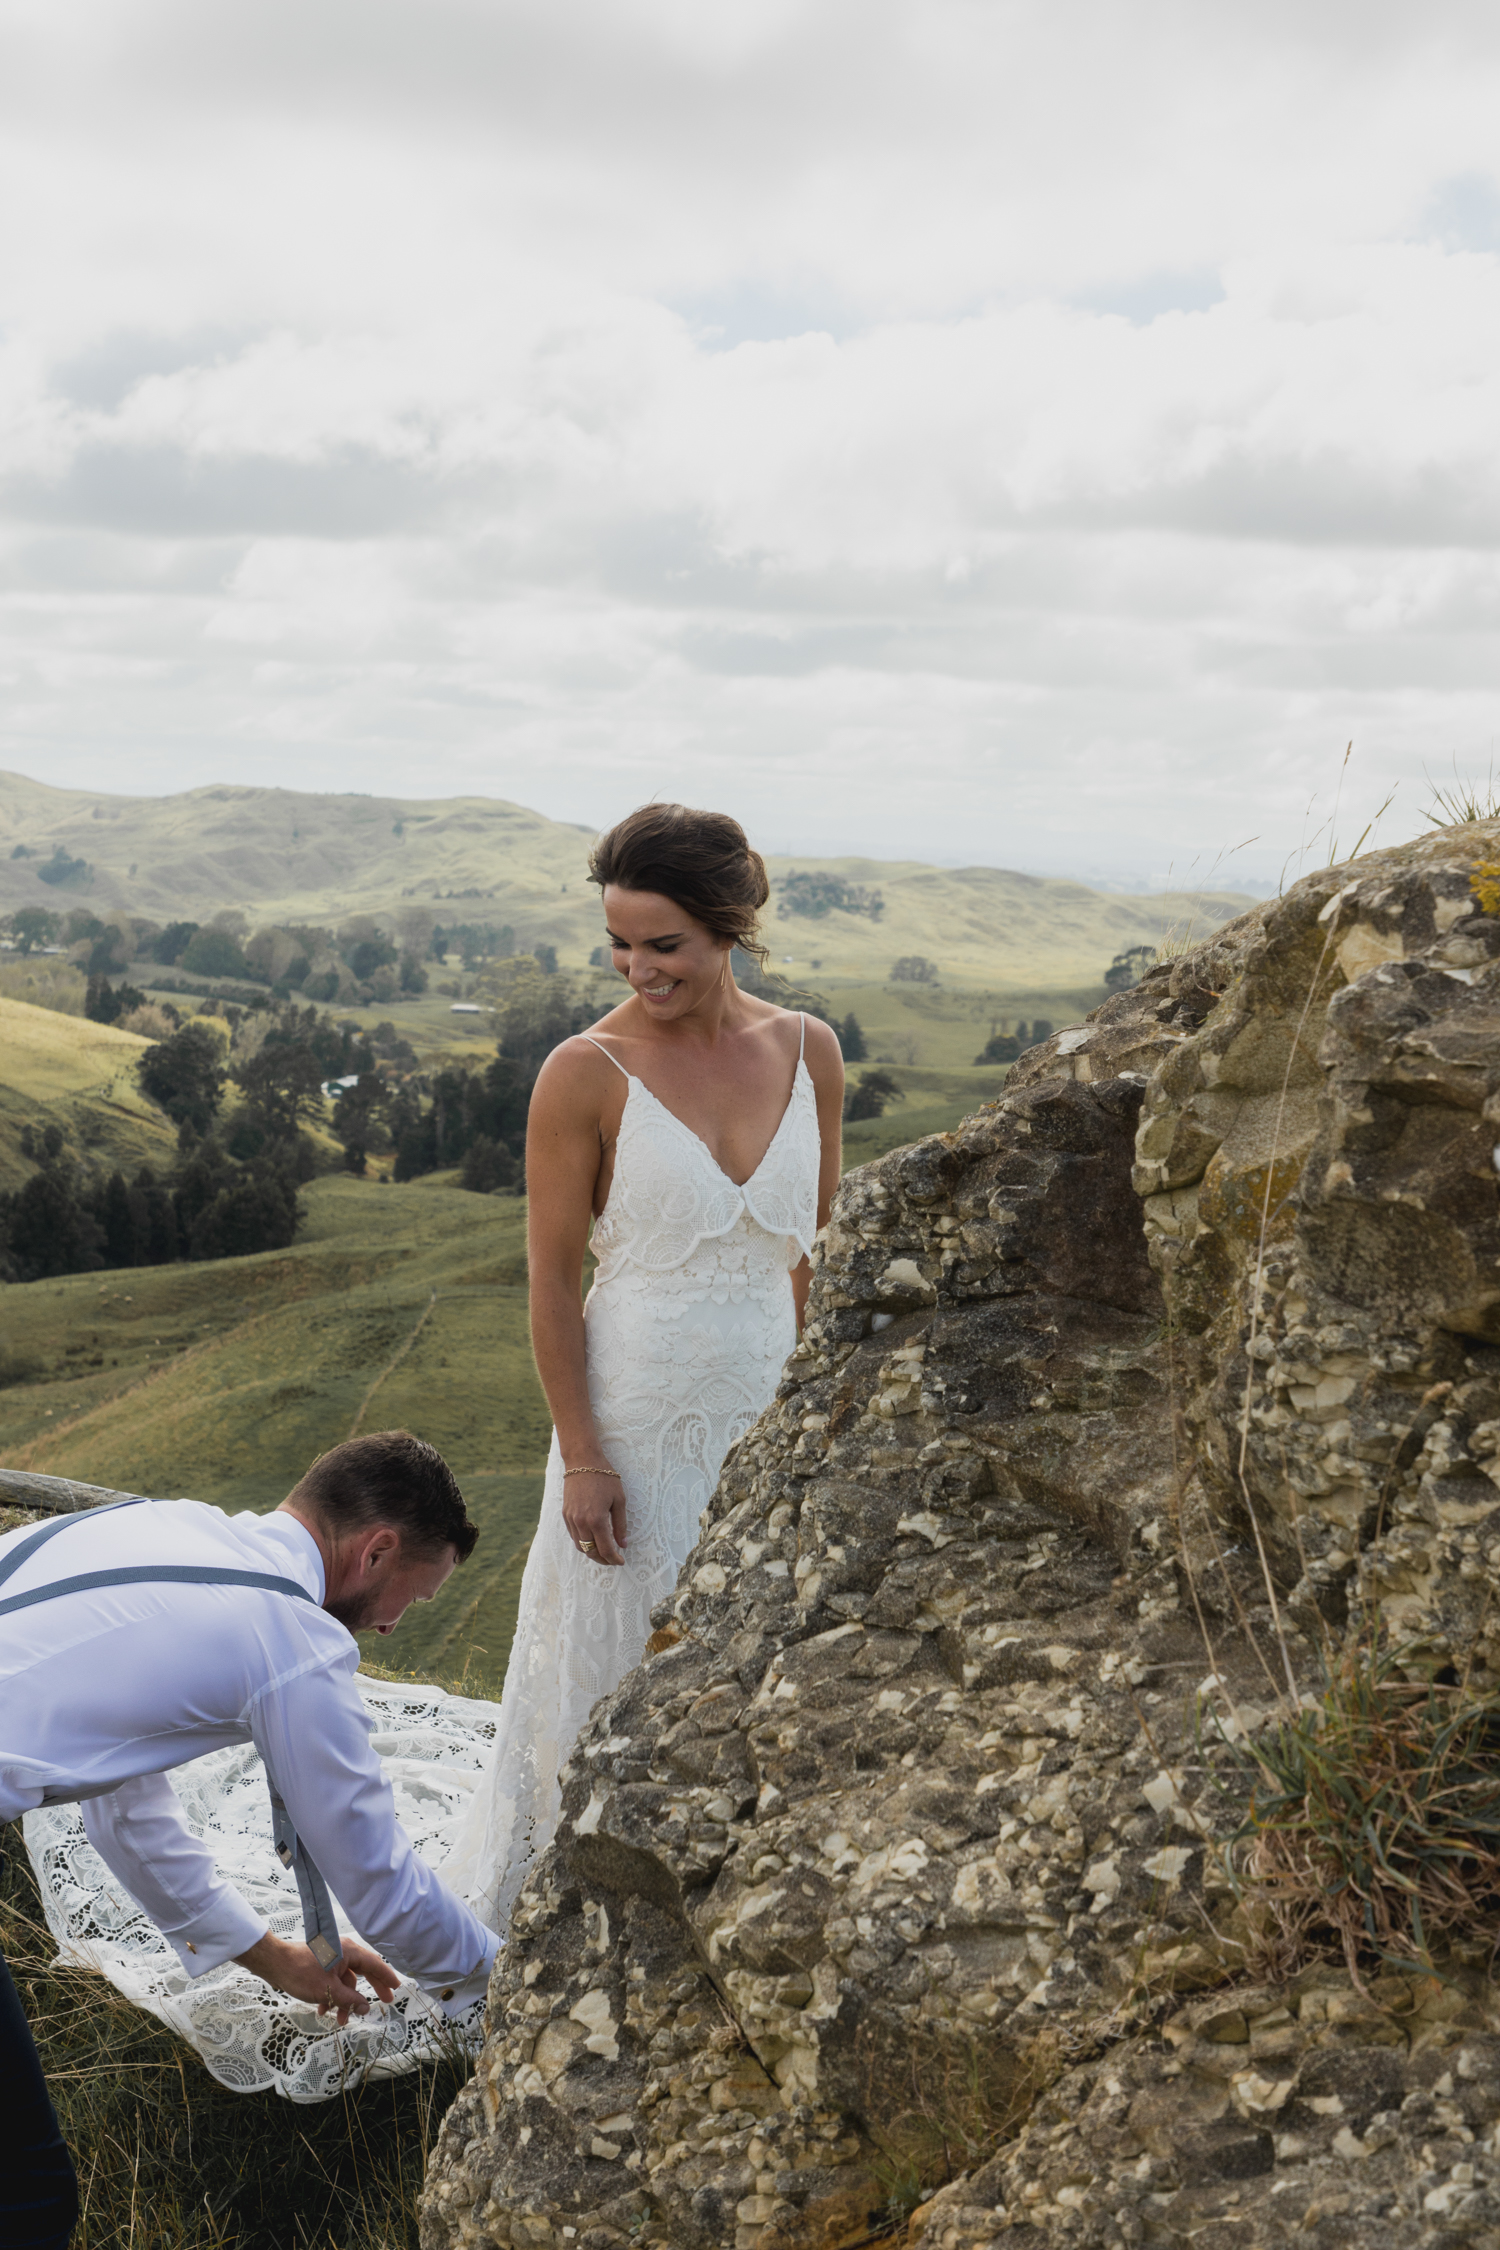 wedding-at-the-red-barn-new-zealand-wedding-photographer-groom-helping-bride-with-her-dress.jpg